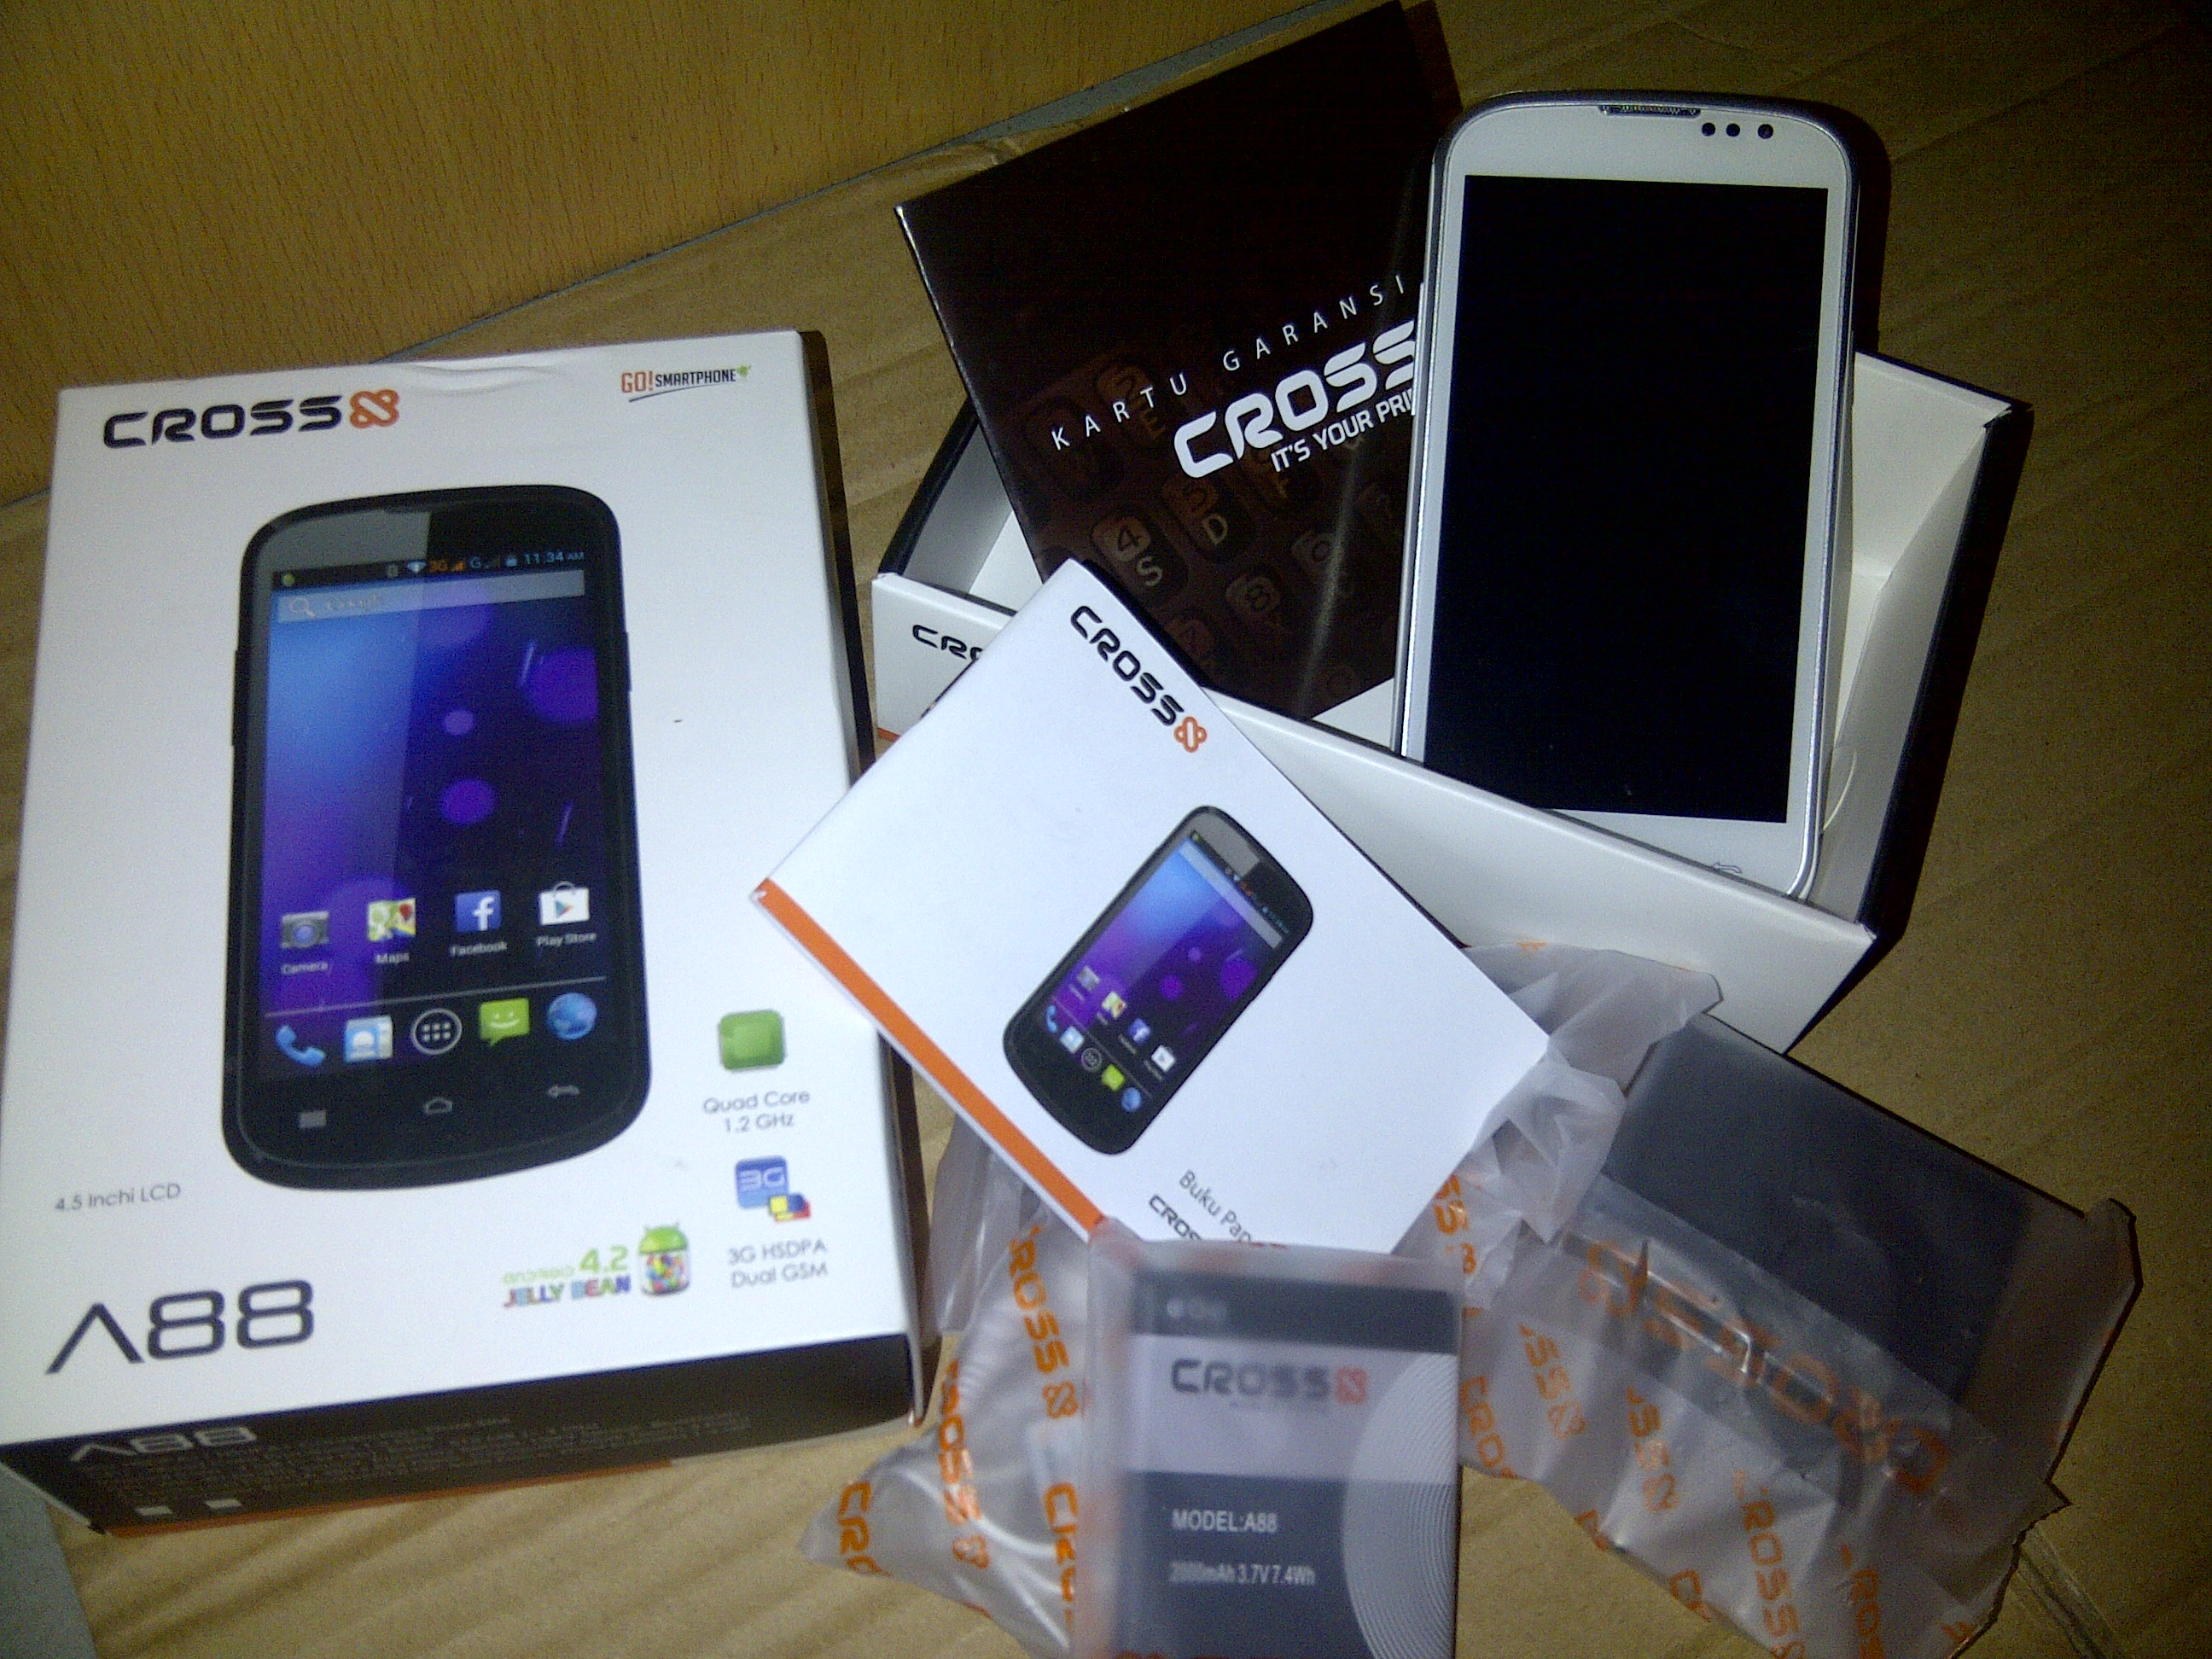 spesifikasi cross a88 android os v4 2 jelly bean quad core prosesor 1